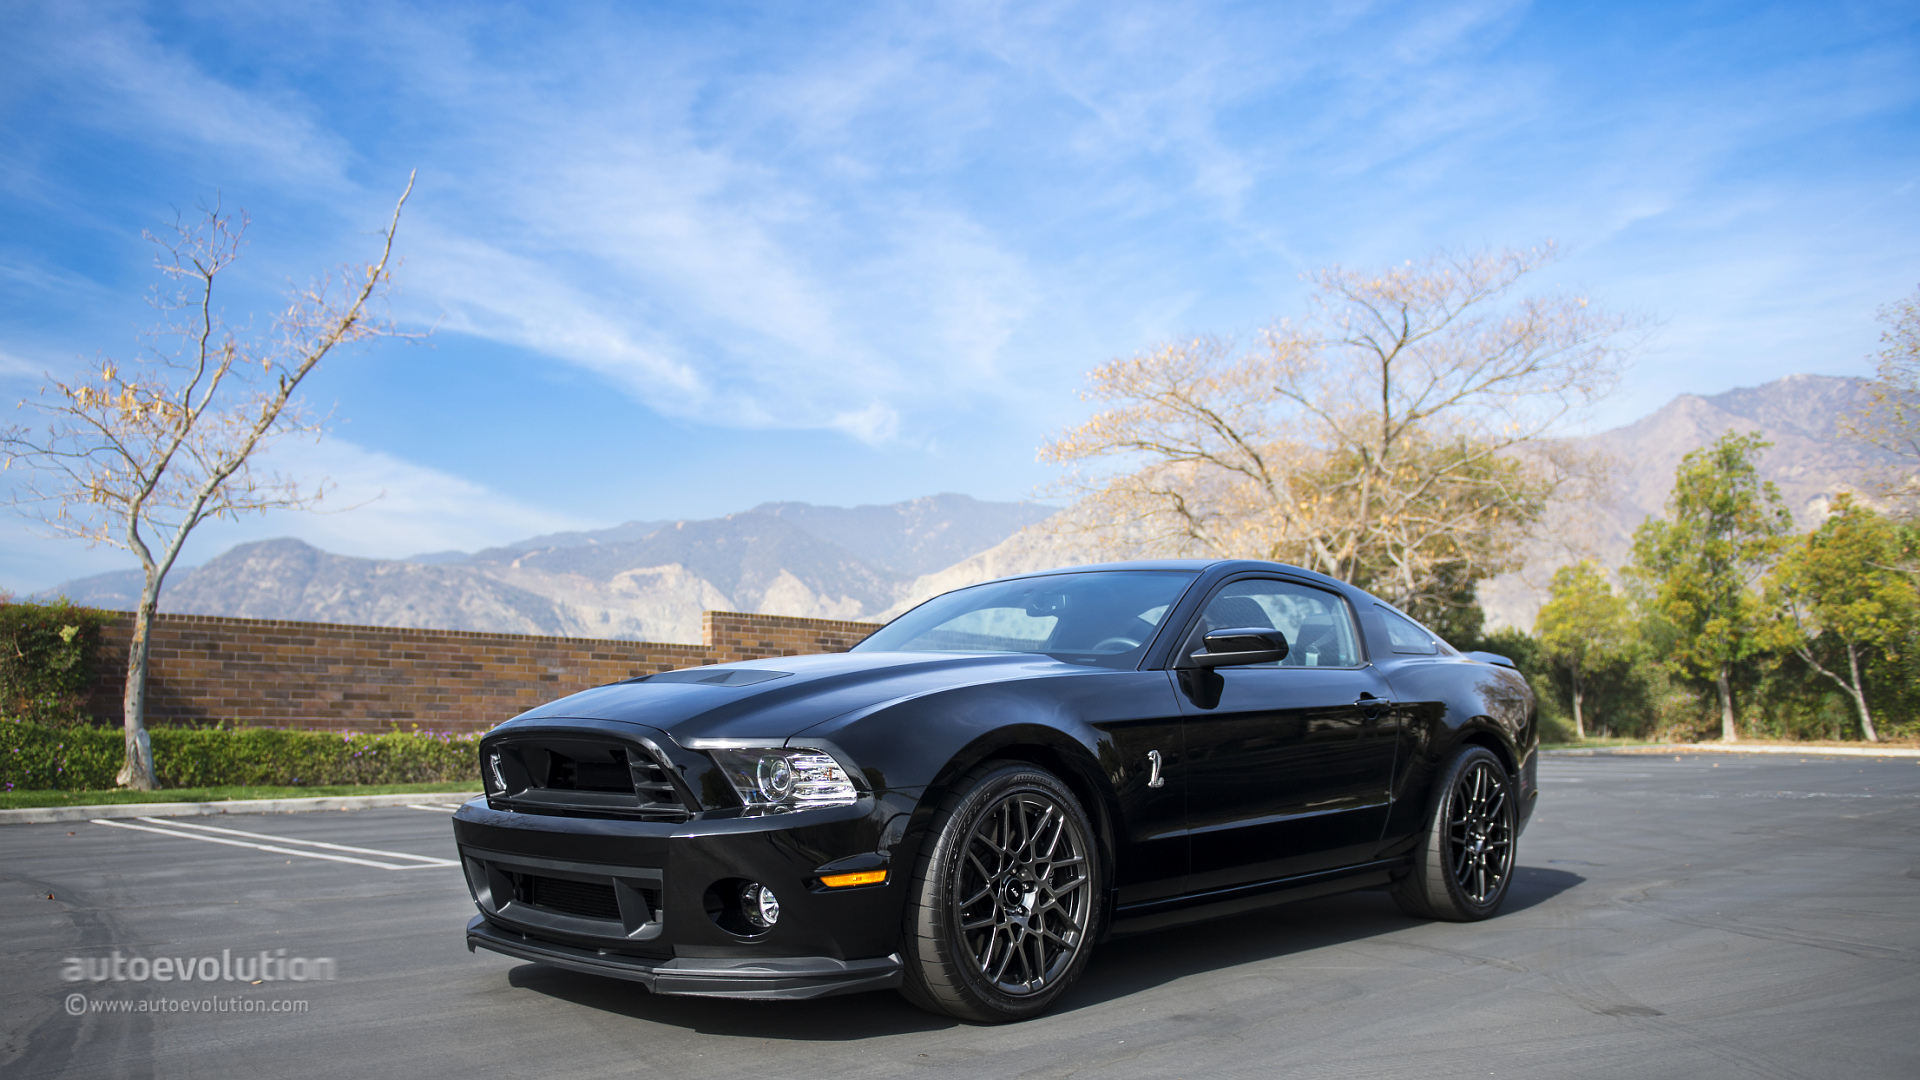 2014 ford mustang shelby gt500 review page 2 autoevolution. Black Bedroom Furniture Sets. Home Design Ideas